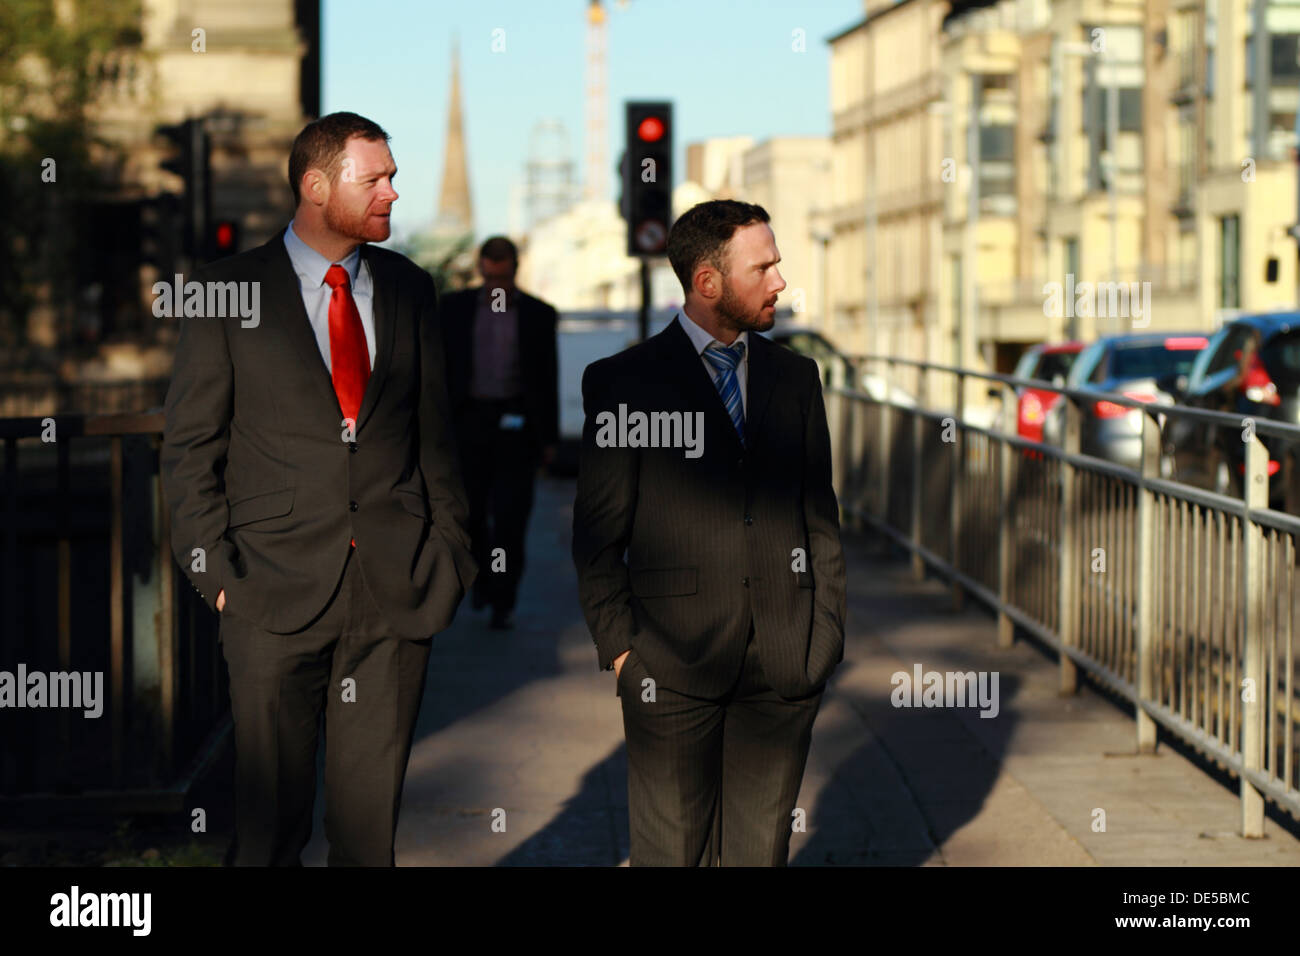 Two young men wearing suits walking to work and waiting at traffic lights to cross. - Stock Image